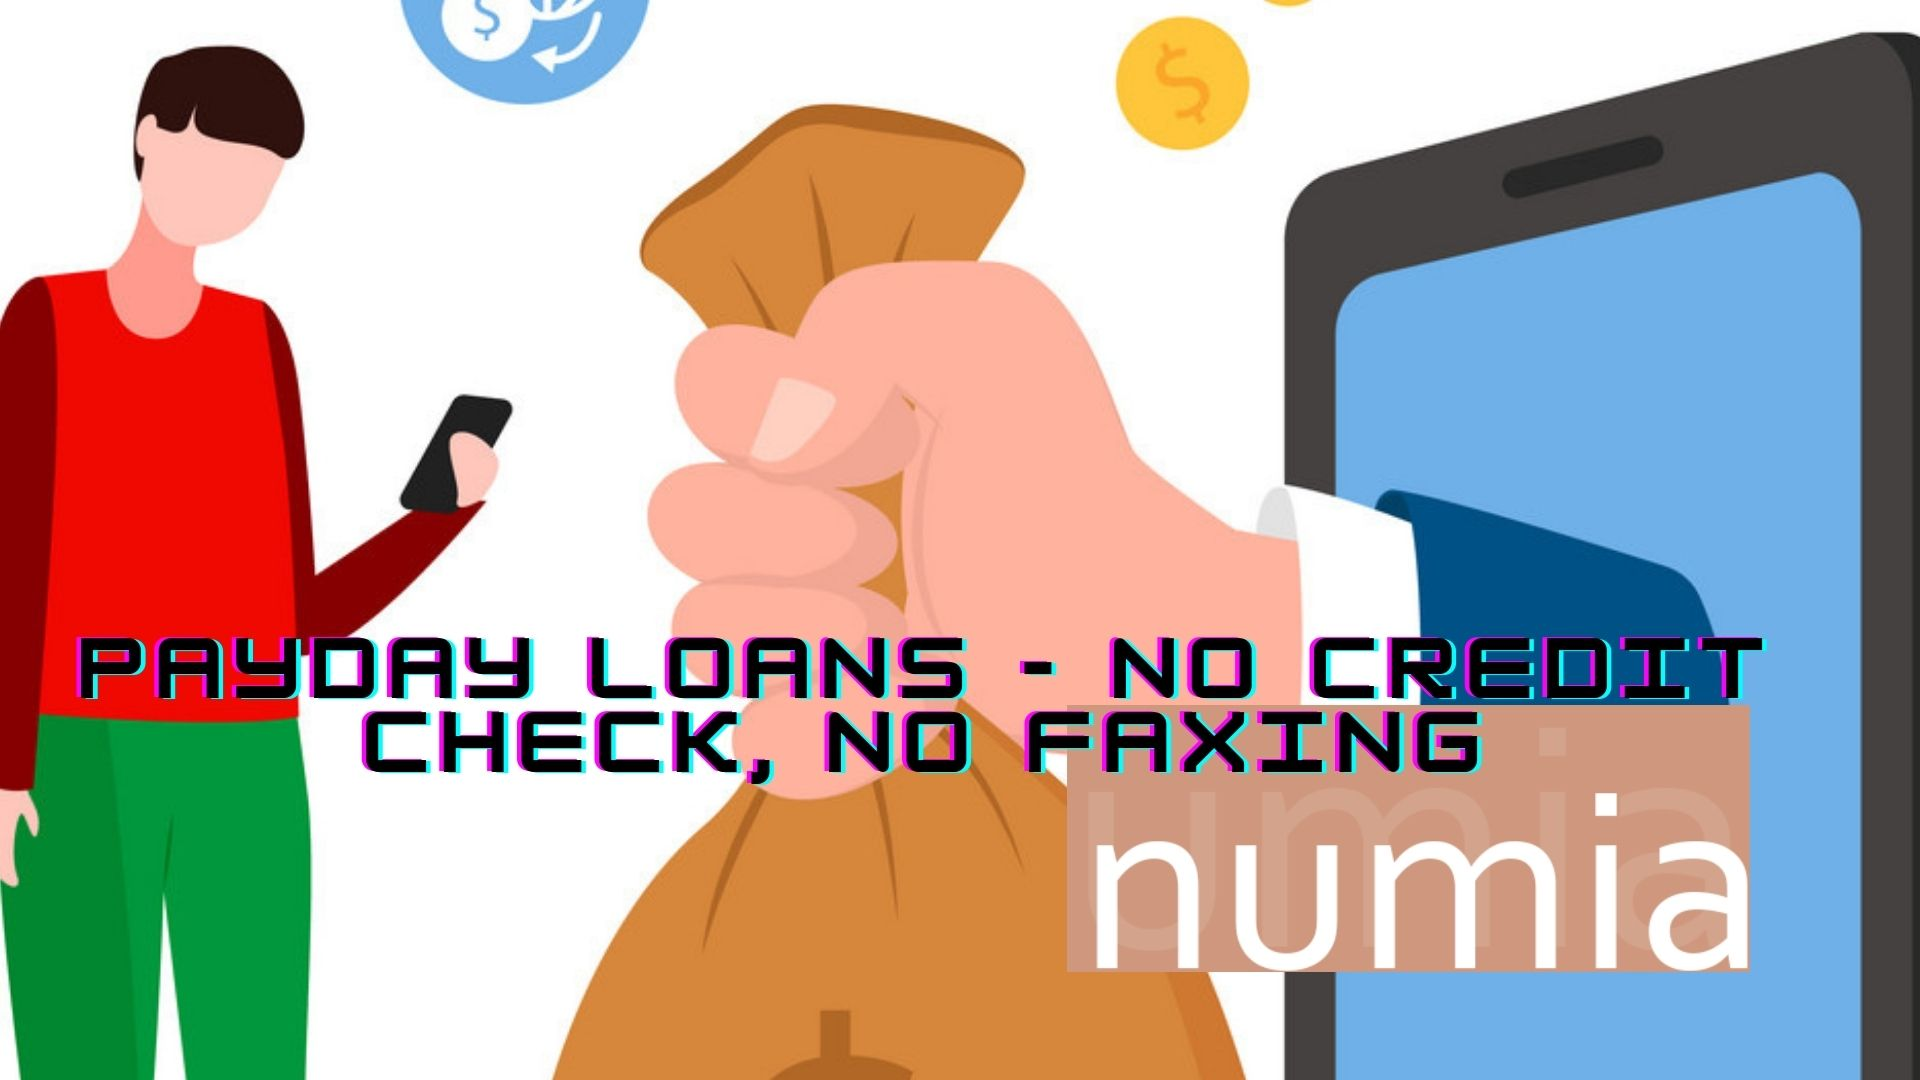 Get Instant Payday Loans Online with No Faxing, No Credit Check, No Phone Calls